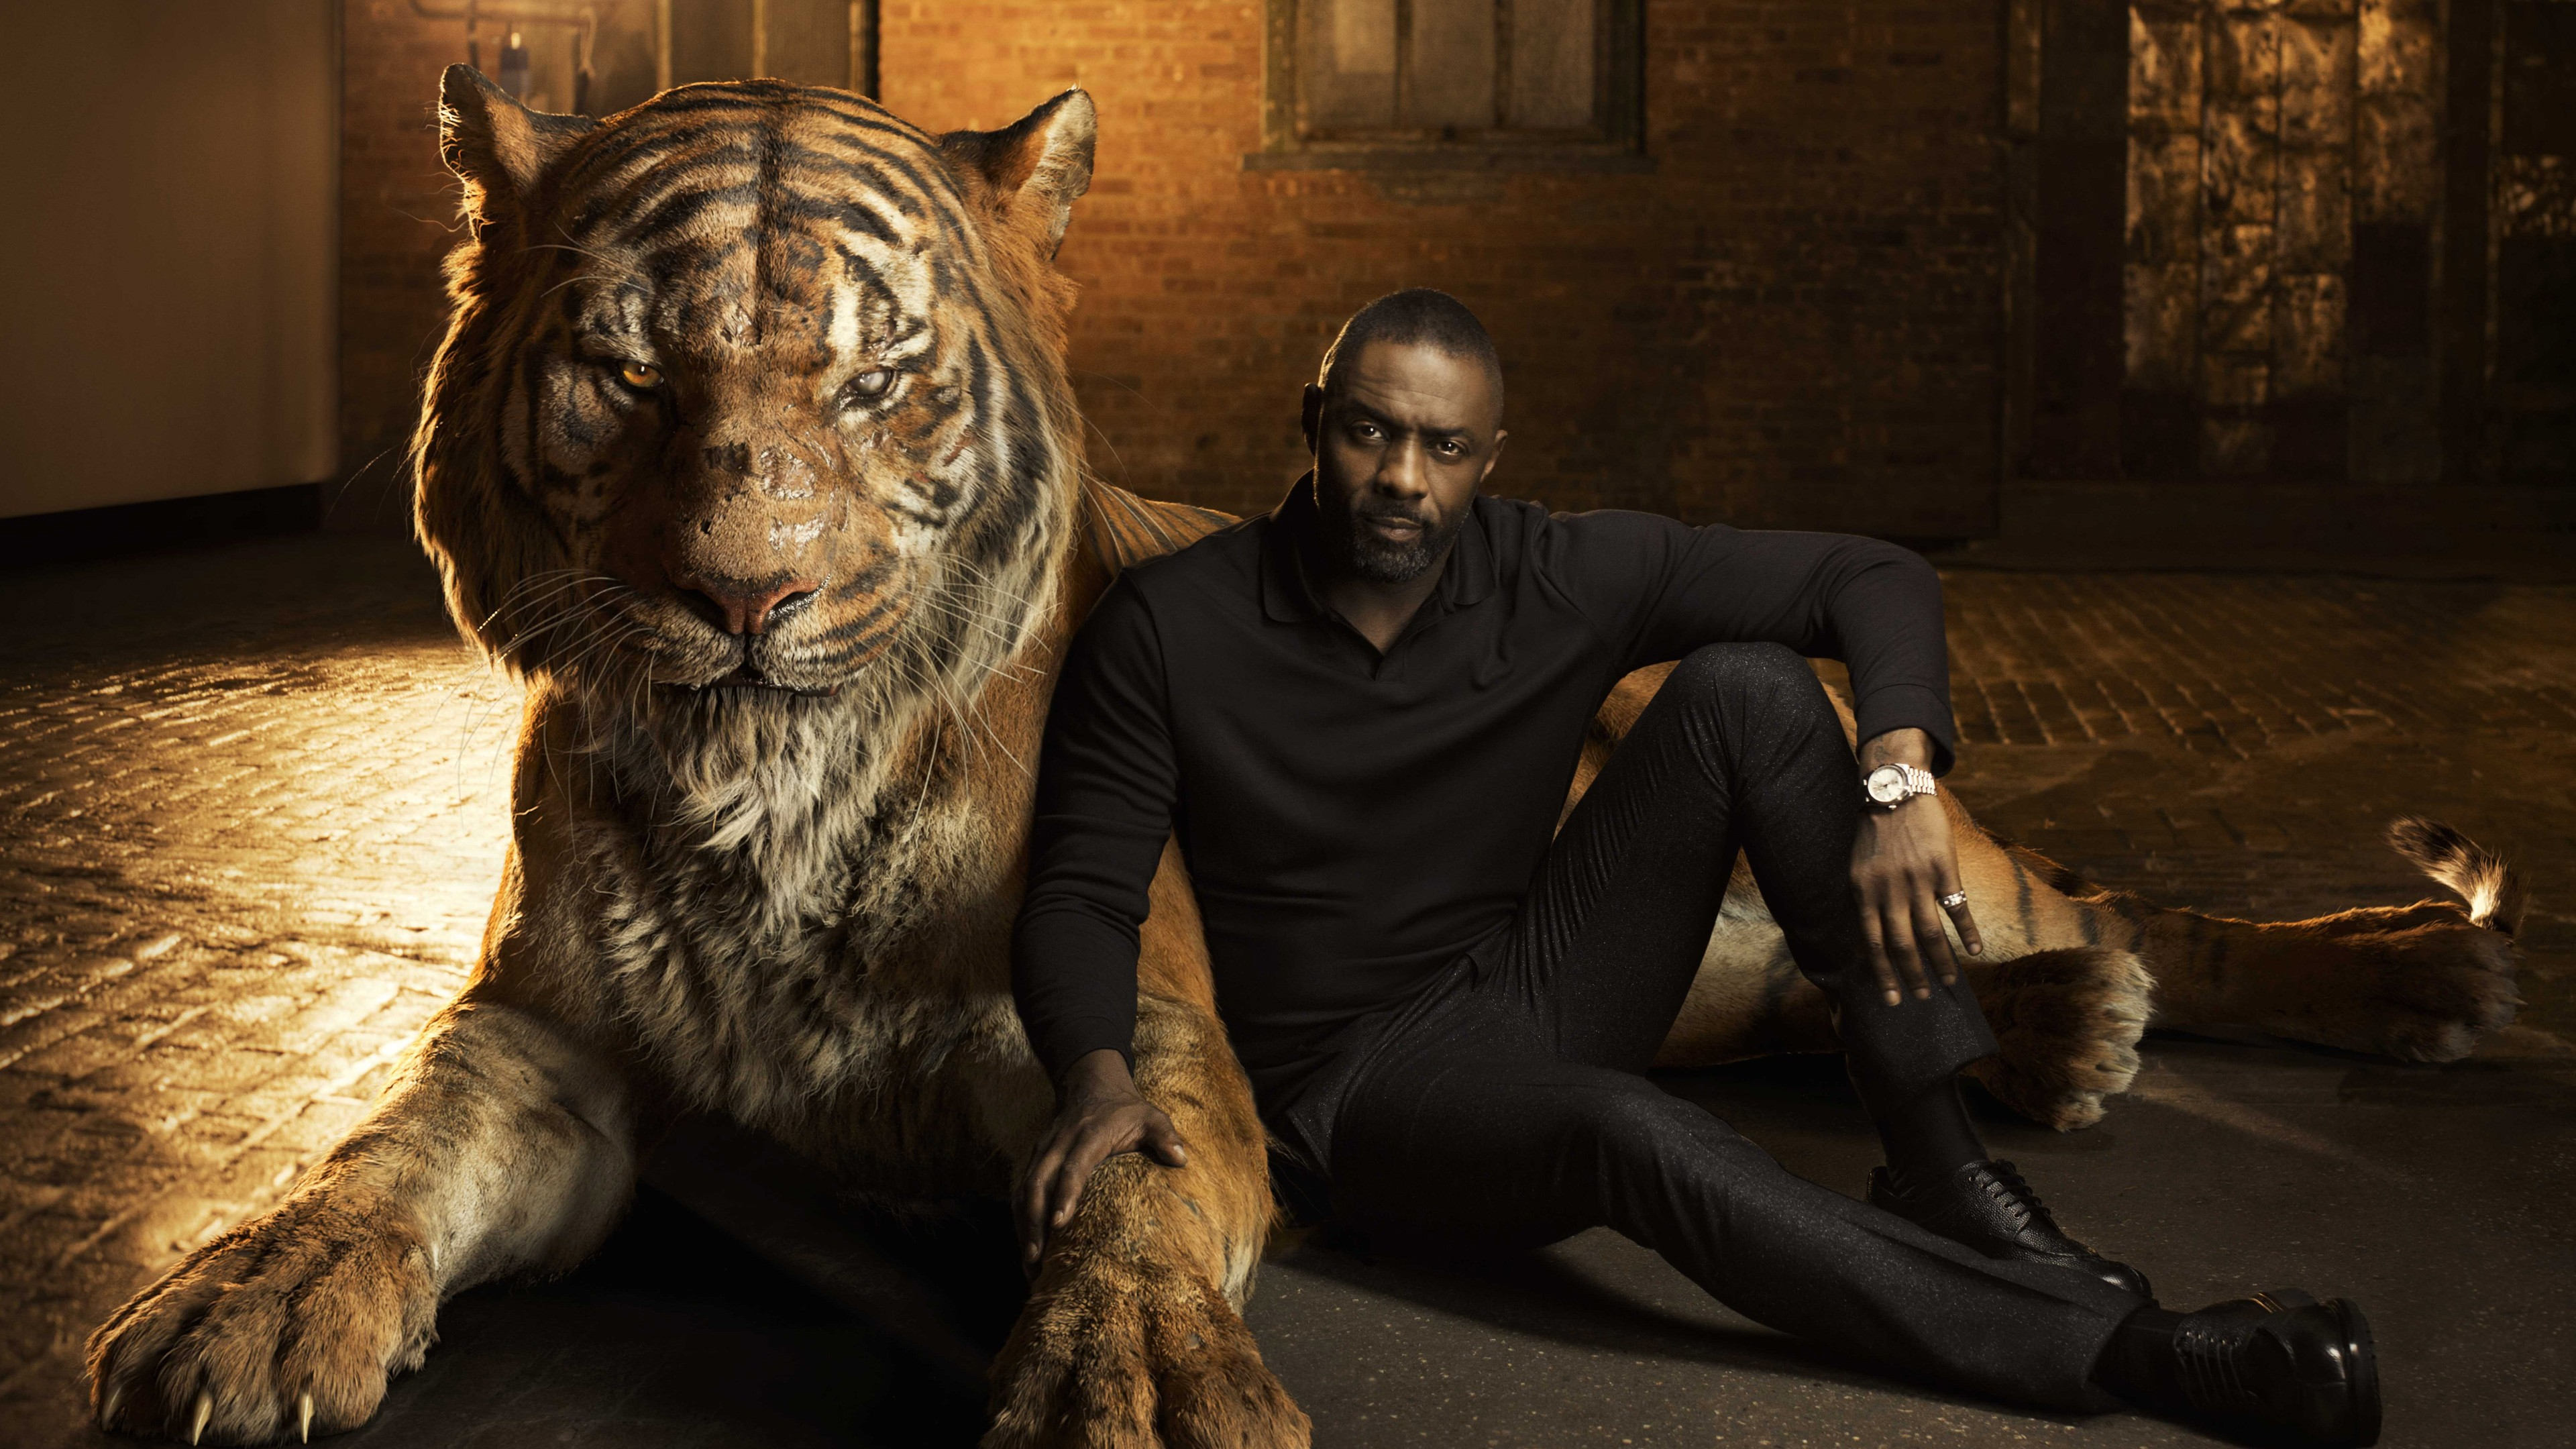 Idris Elba Actor Voice HD Wallpaper 67015 3840x2160px 3840x2160